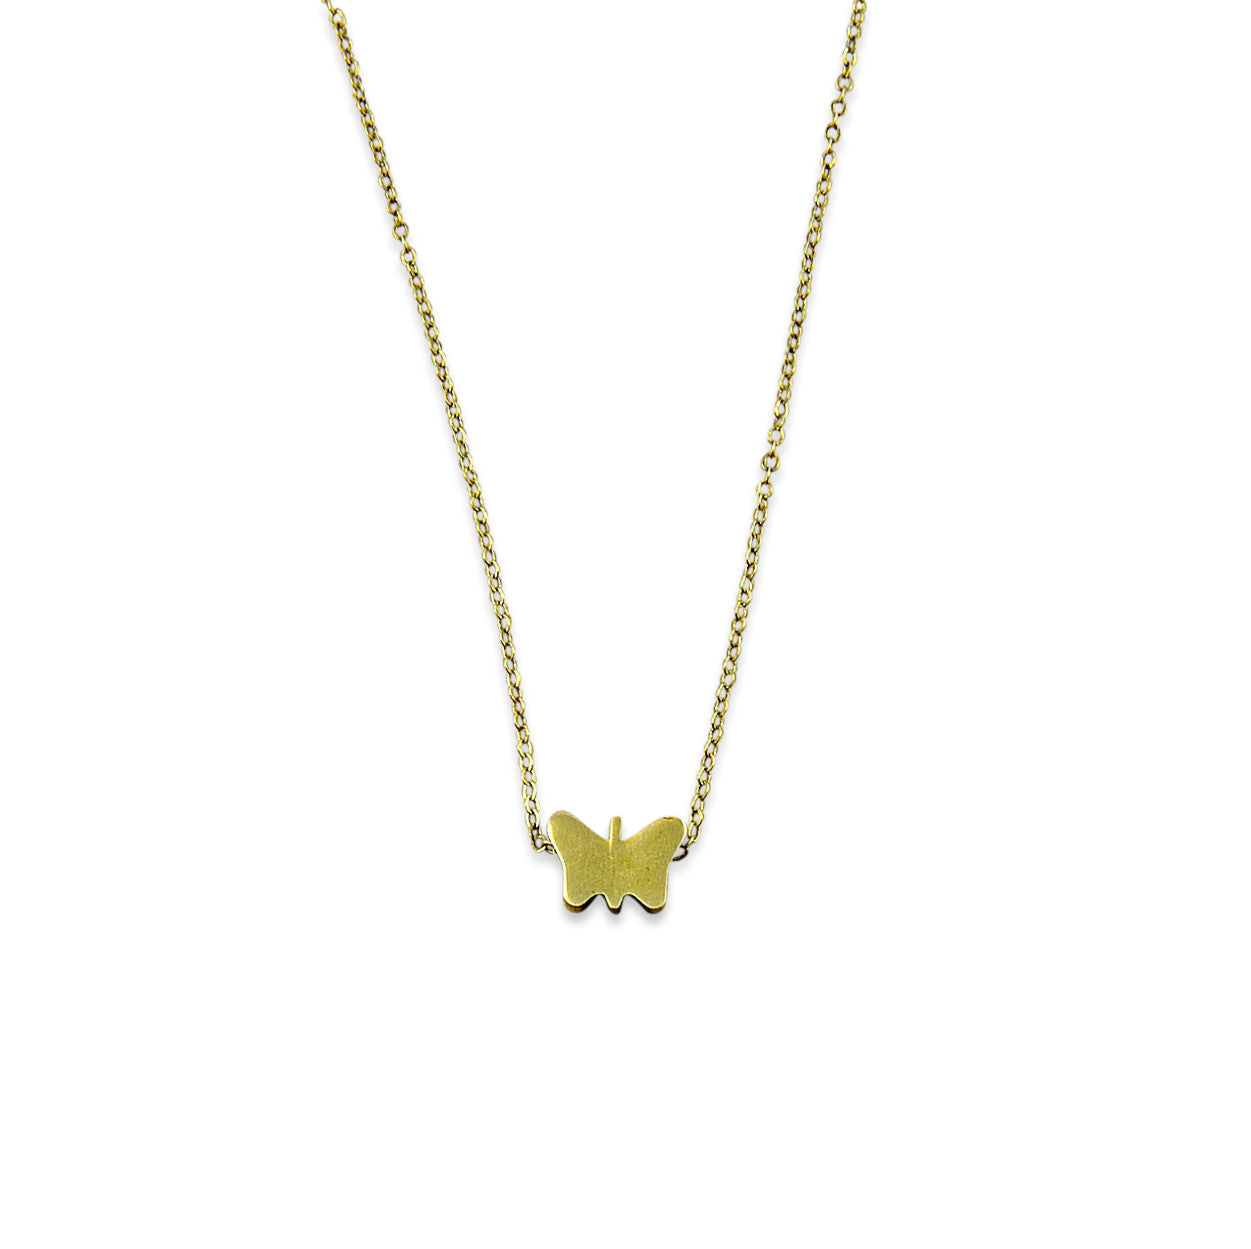 Tiny Butterfly Necklace - Gwen Delicious Jewelry Designs